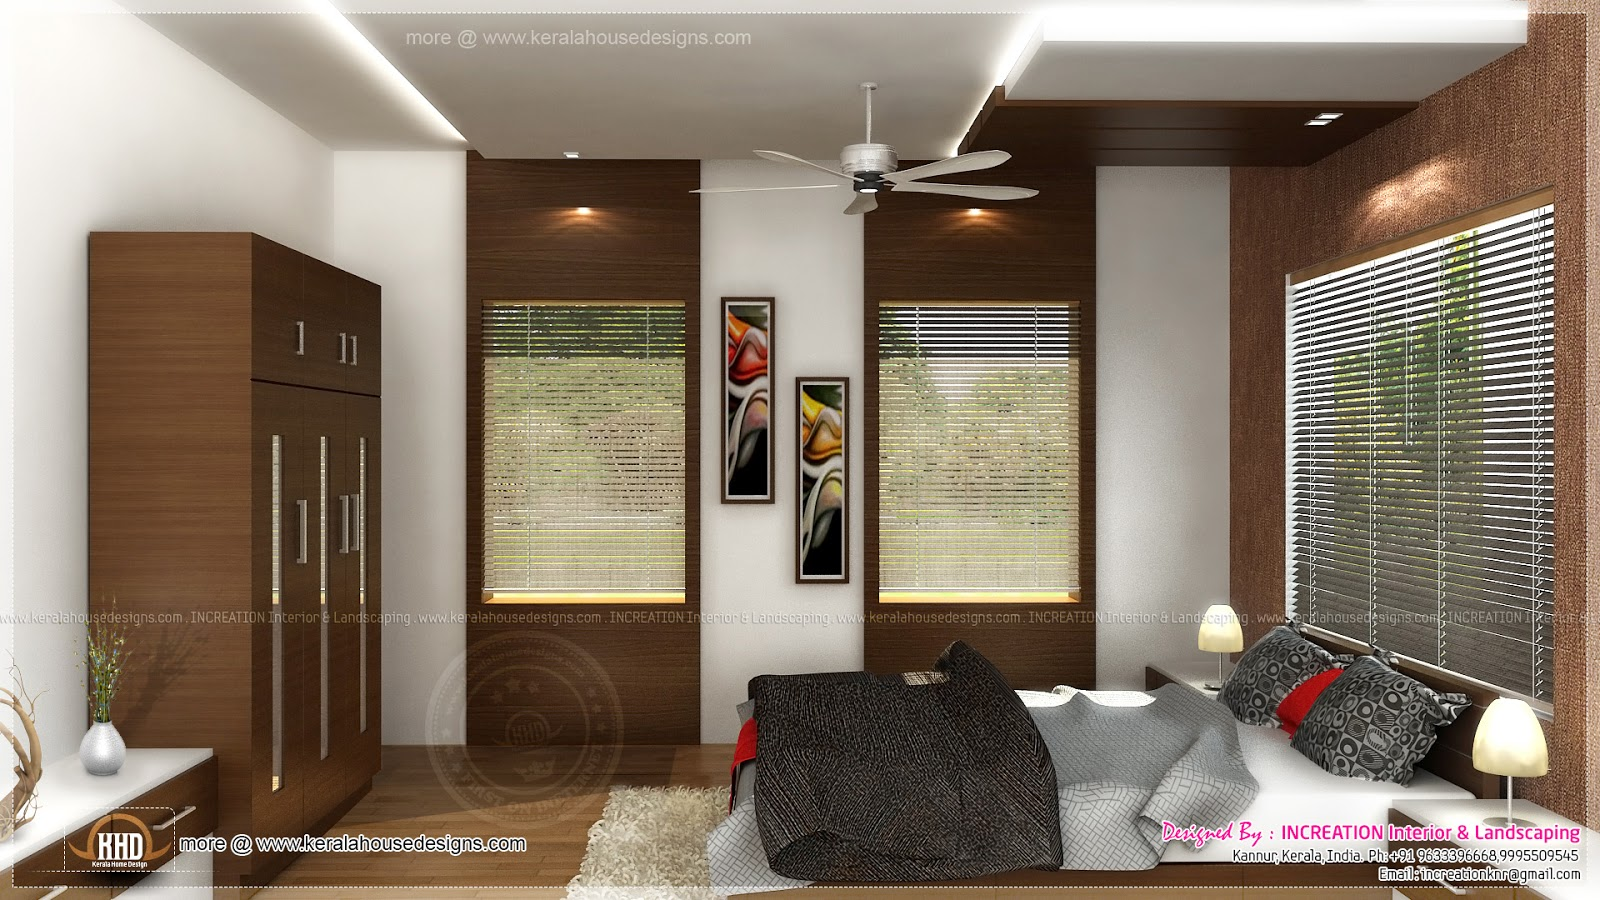 Interior designs from kannur kerala home kerala plans for House interior design kerala photos